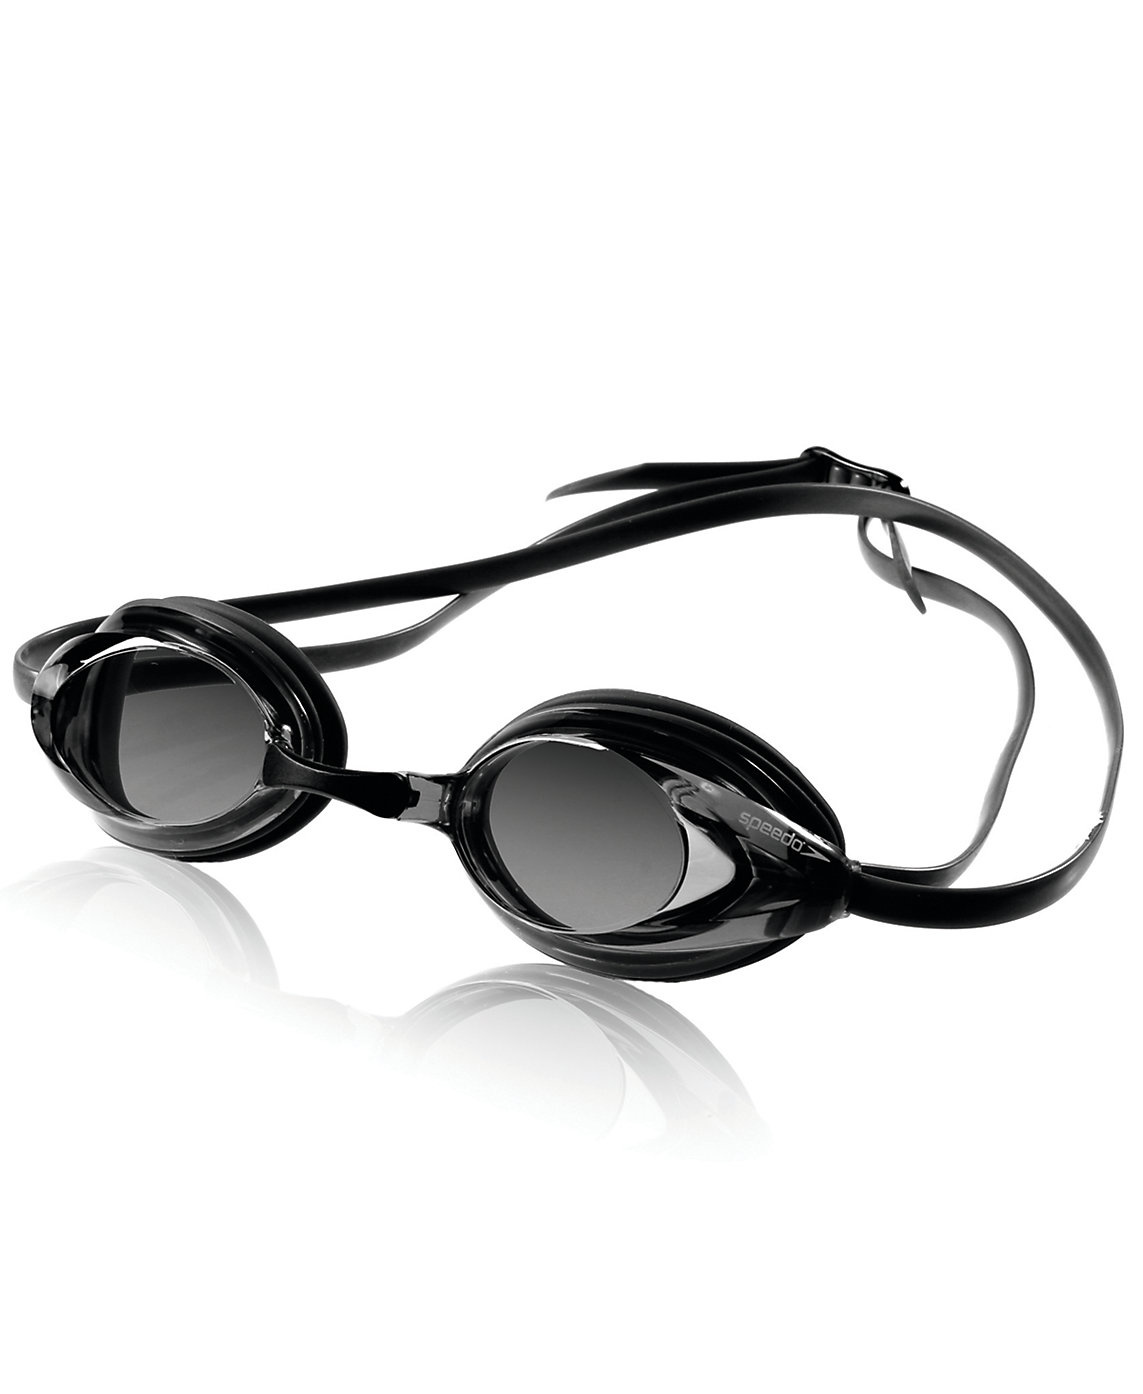 Speedo Vanquisher 2.0 Optical Goggle